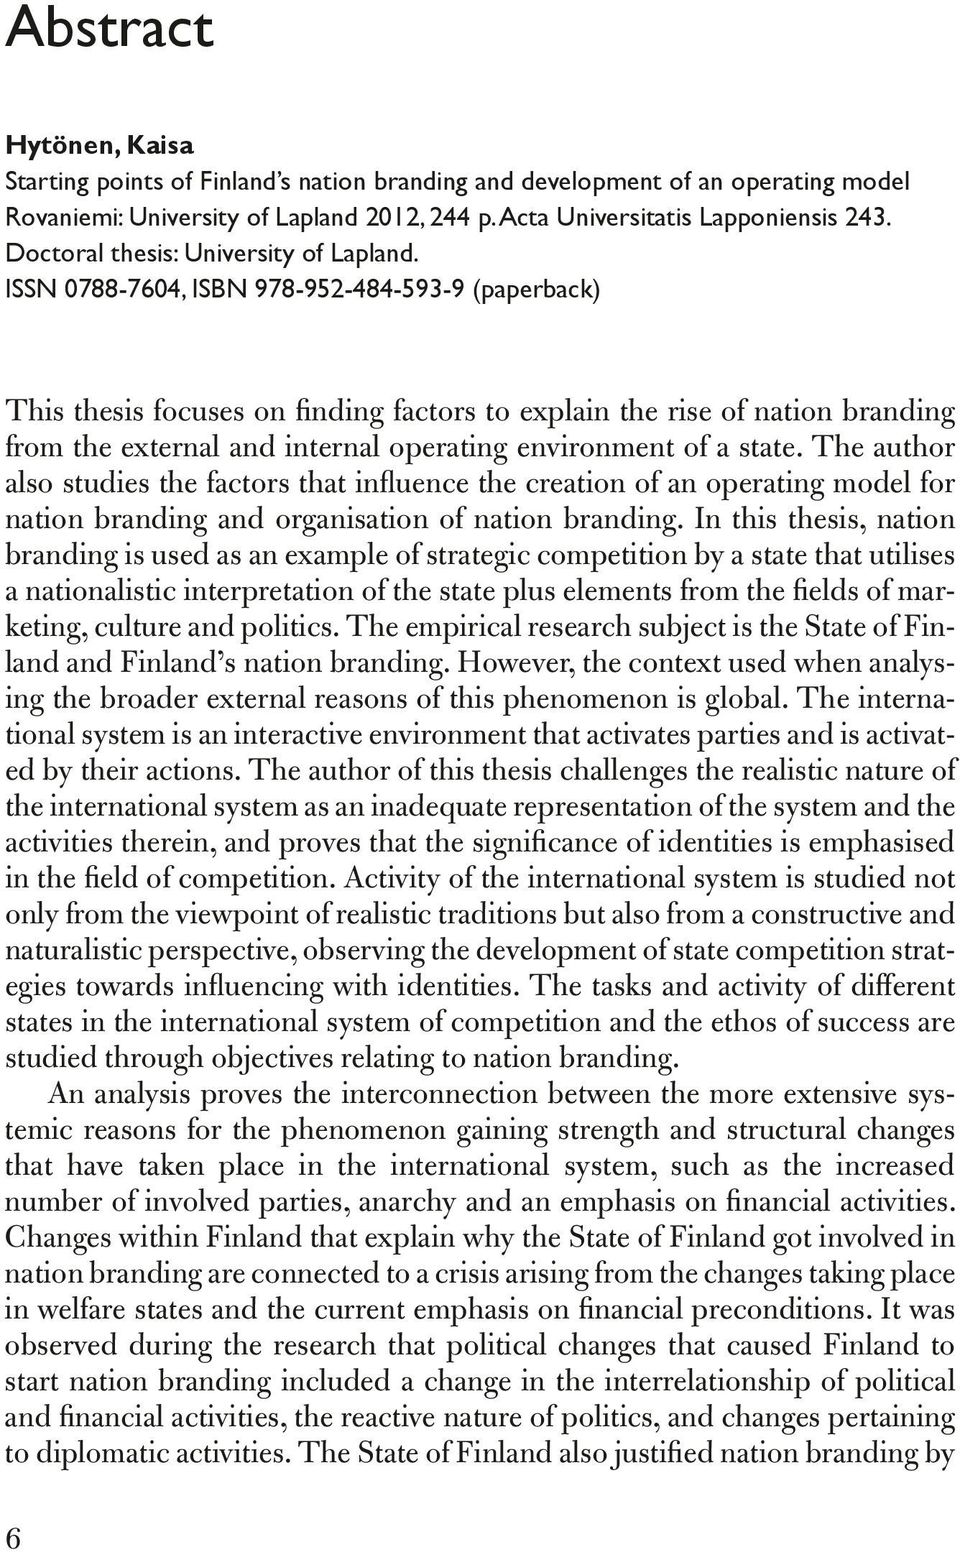 ISSN 0788-7604, ISBN 978-952-484-593-9 (paperback) This thesis focuses on finding factors to explain the rise of nation branding from the external and internal operating environment of a state.